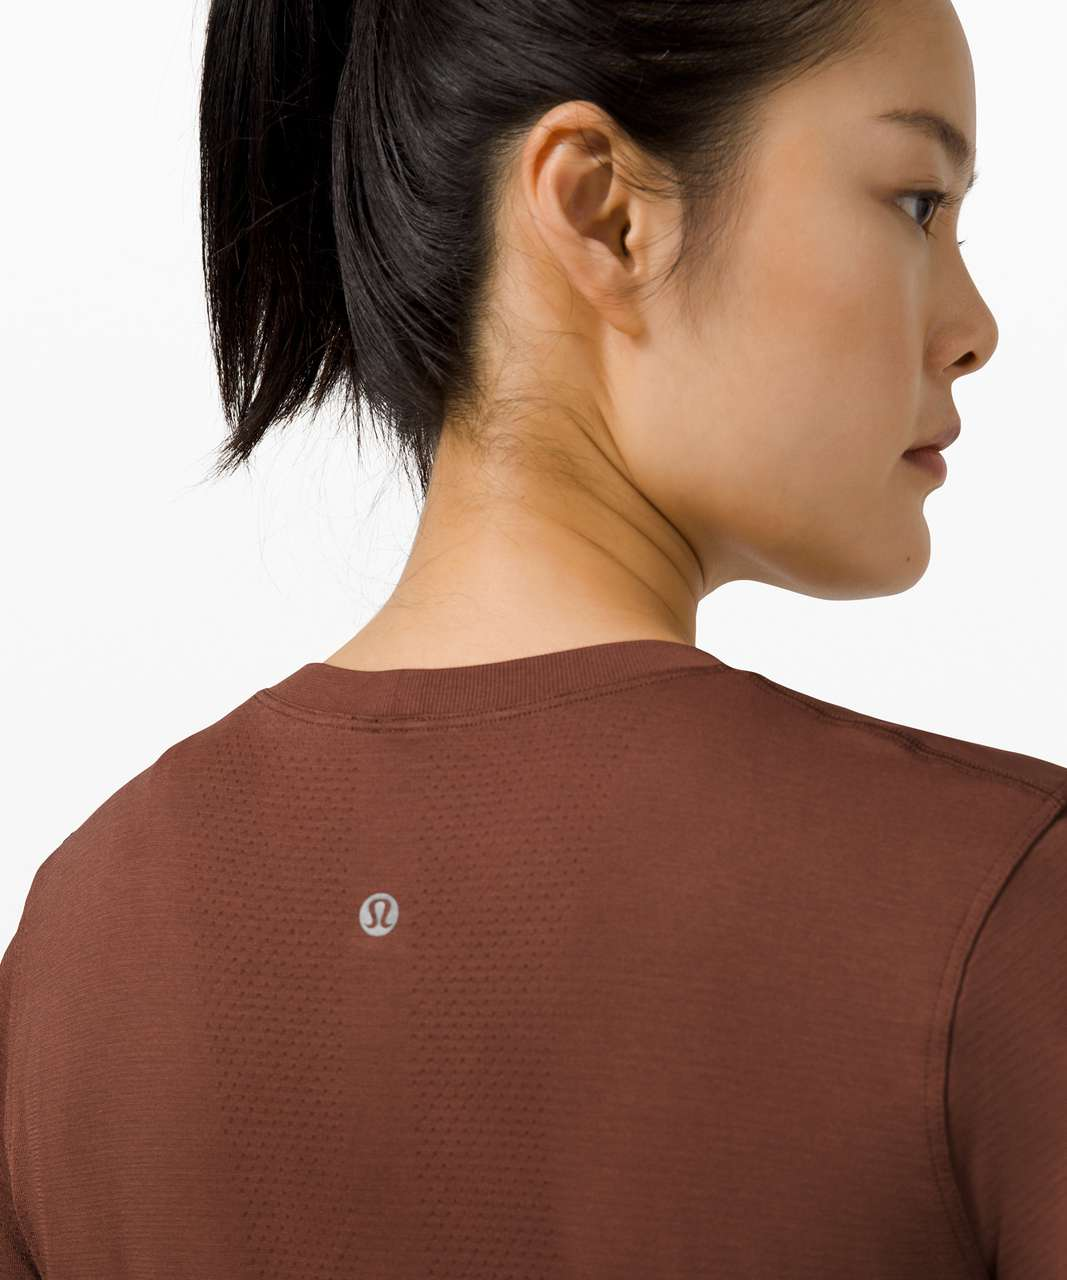 Lululemon Swiftly Breathe Long Sleeve - Ancient Copper / Ancient Copper